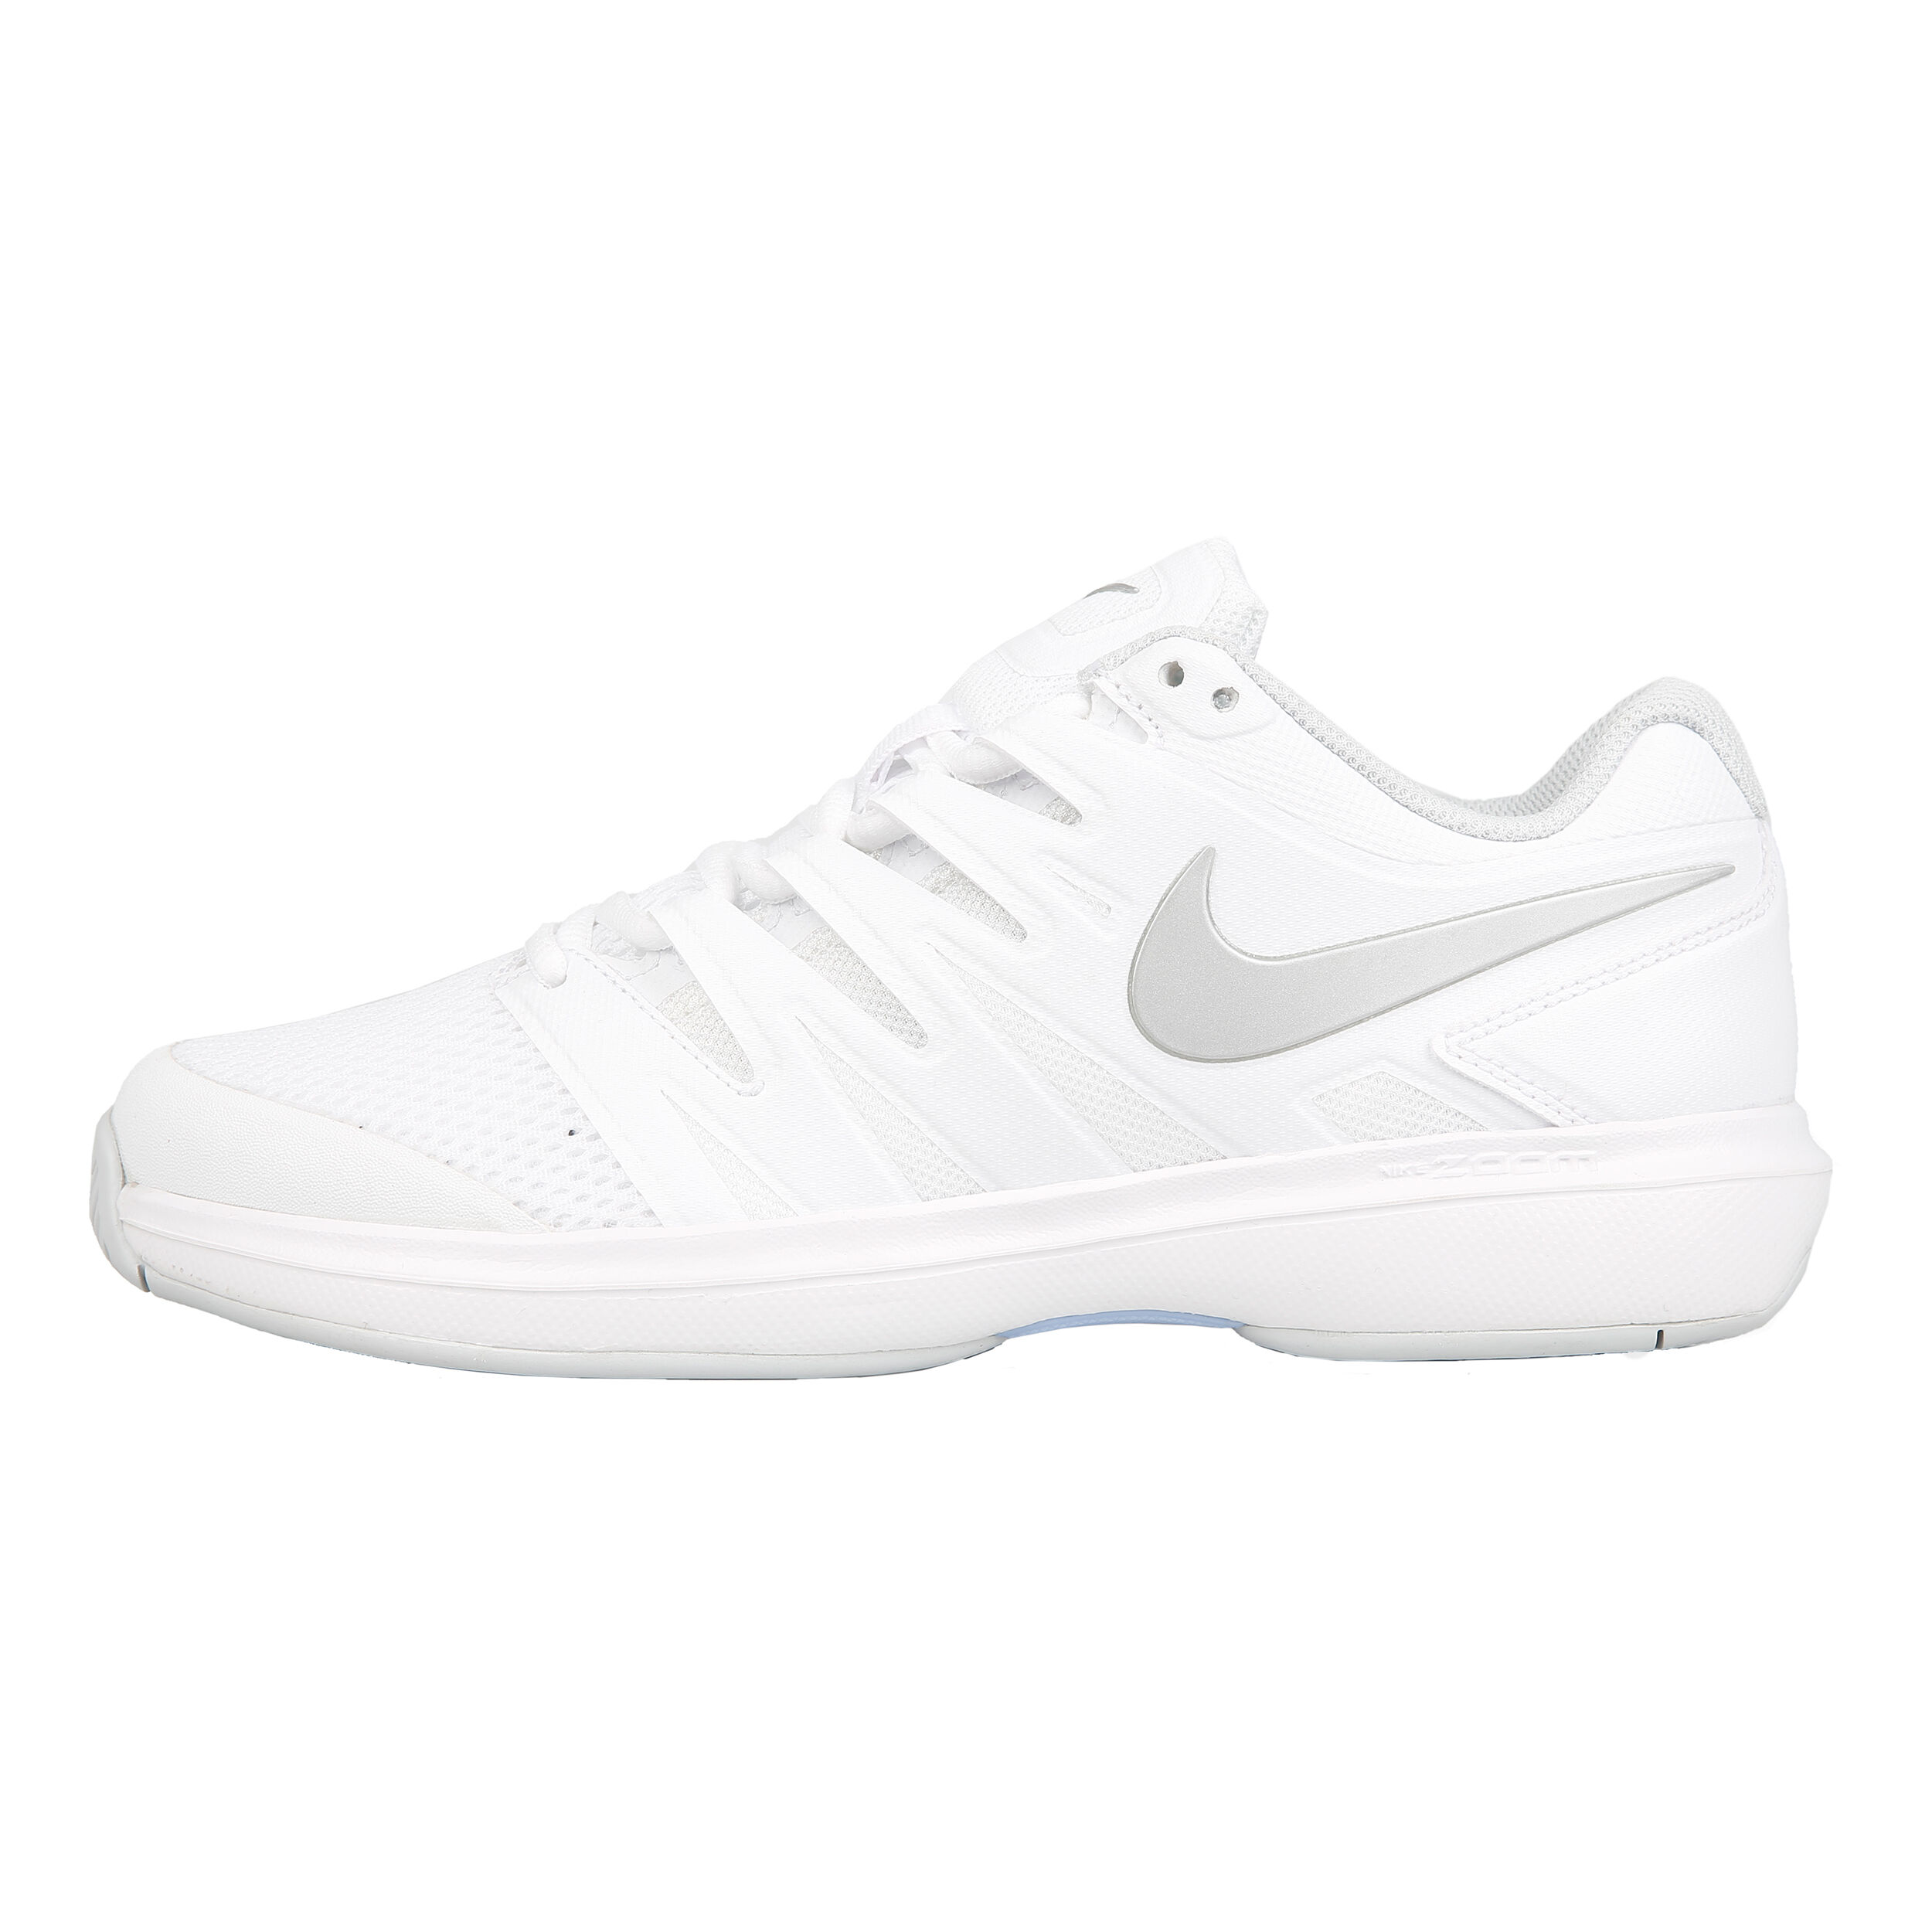 Nike Air Zoom Prestige Chaussures Toutes Surfaces Femmes